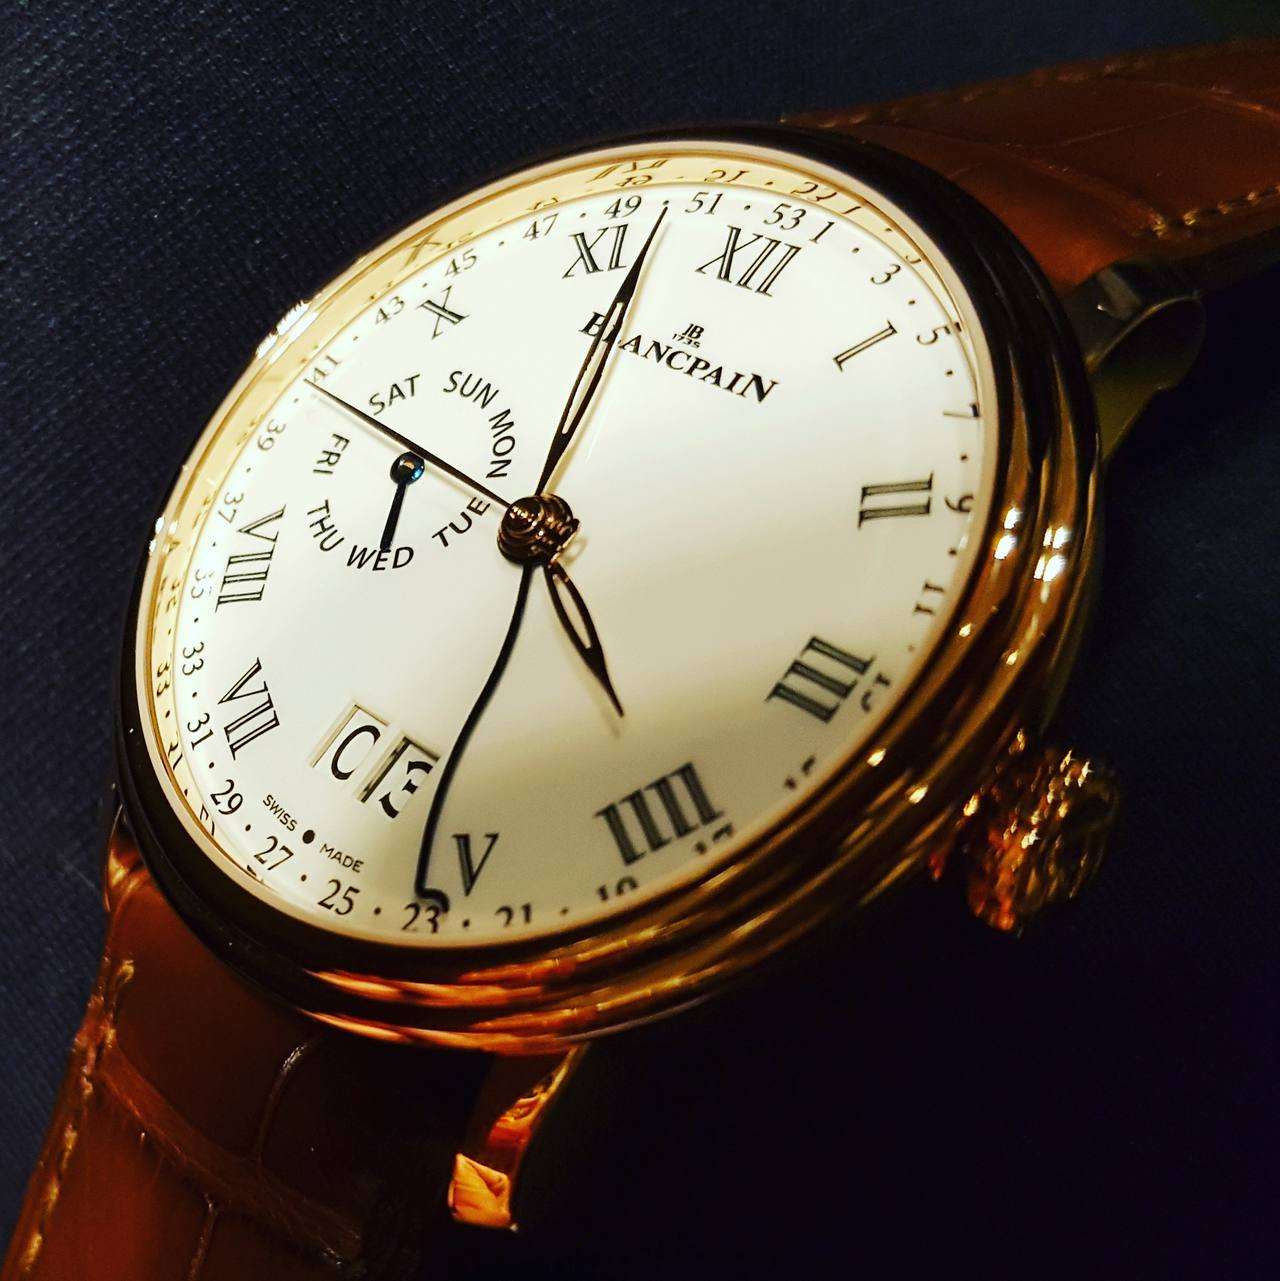 baselworld_2017_BLANCPAIN VILLERET COLLECTION SEMAINIER GRANDE DATE 8 JOURS REF. 6637-3631-55-prezzo-price_0-1003